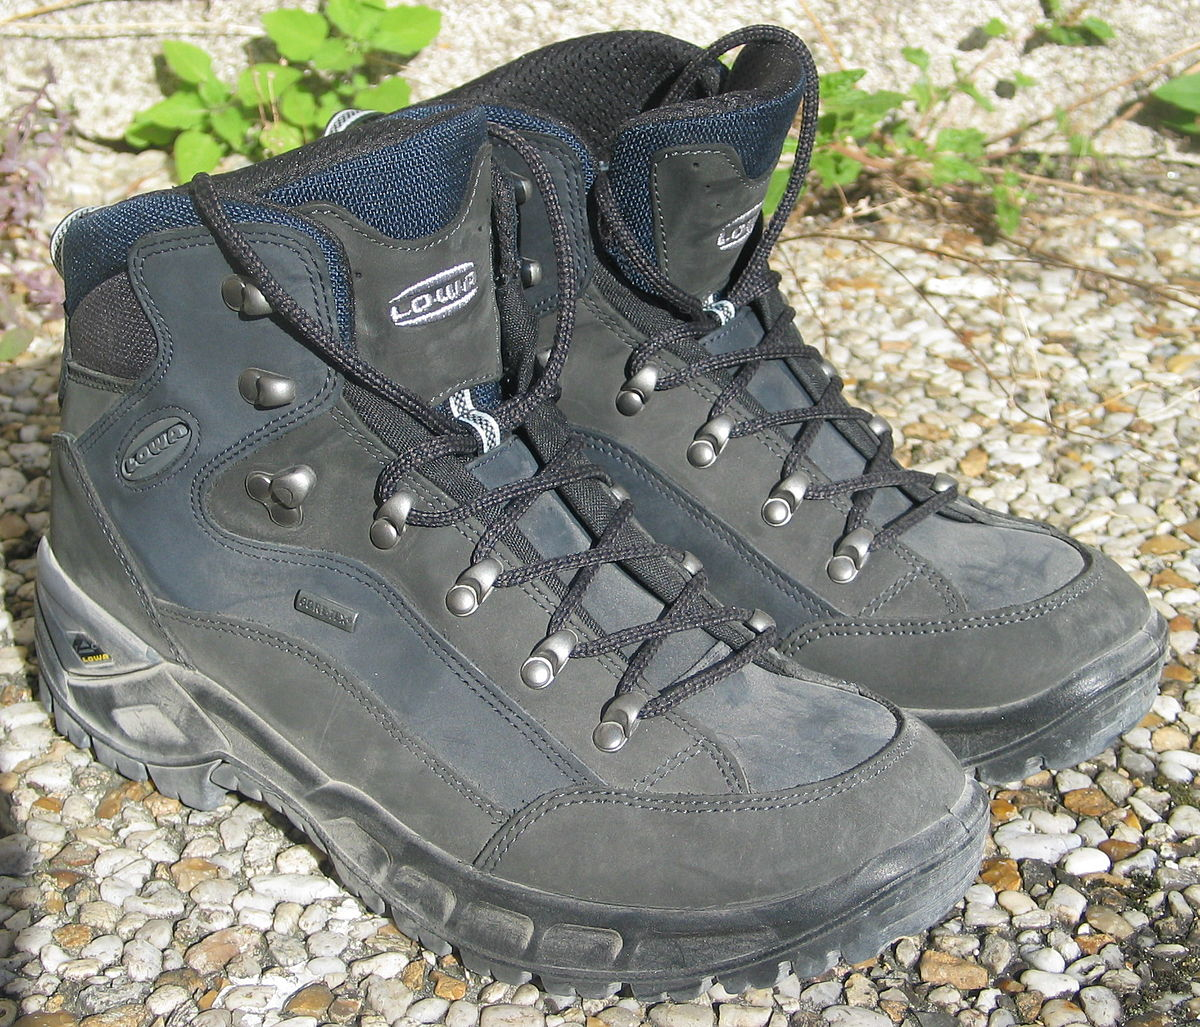 Hiking boot - Wikipedia